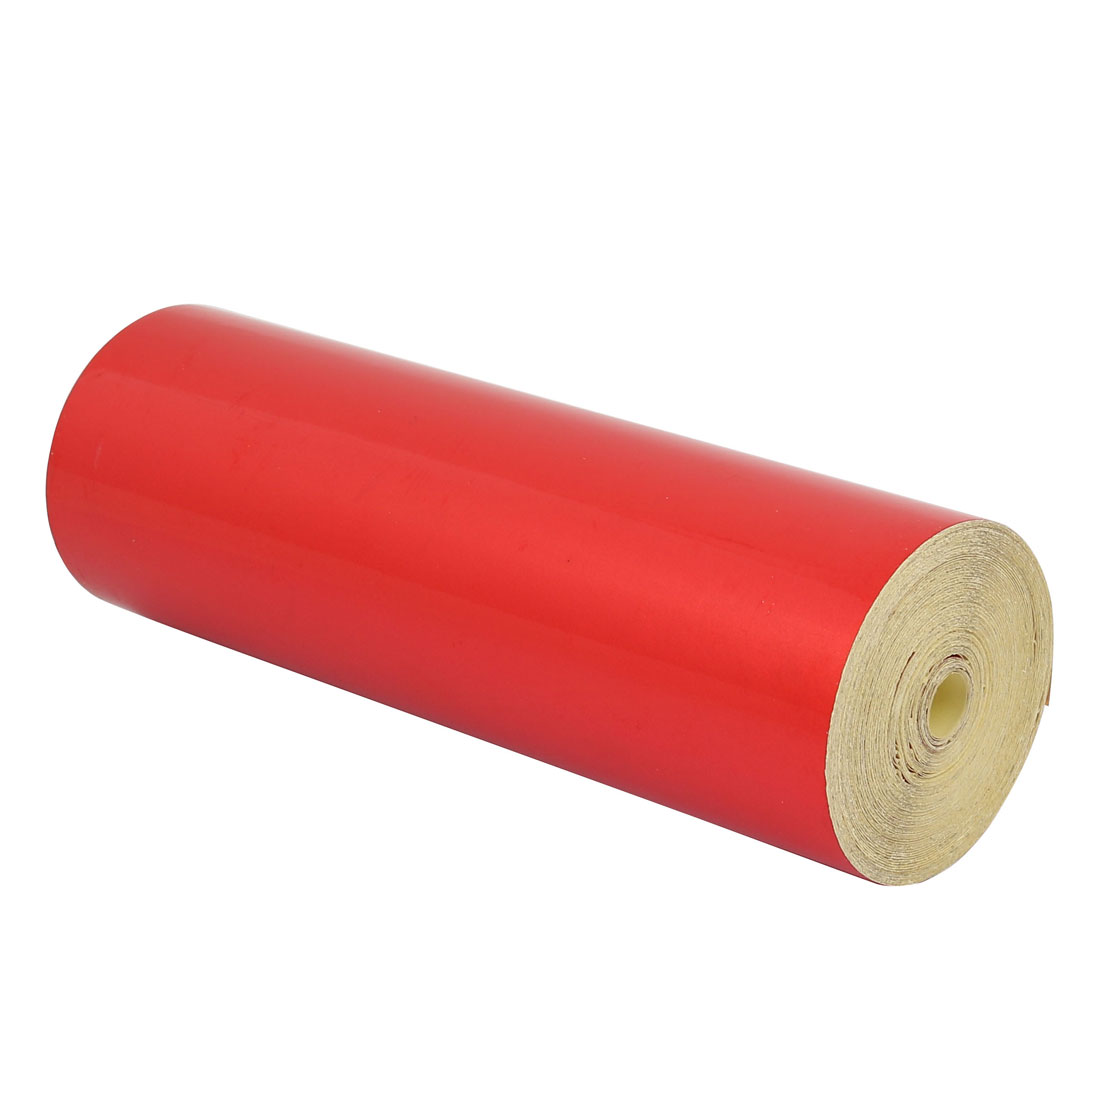 Single Sided Adhesive Reflective Warning Tape Red 15M Length 20cm Width